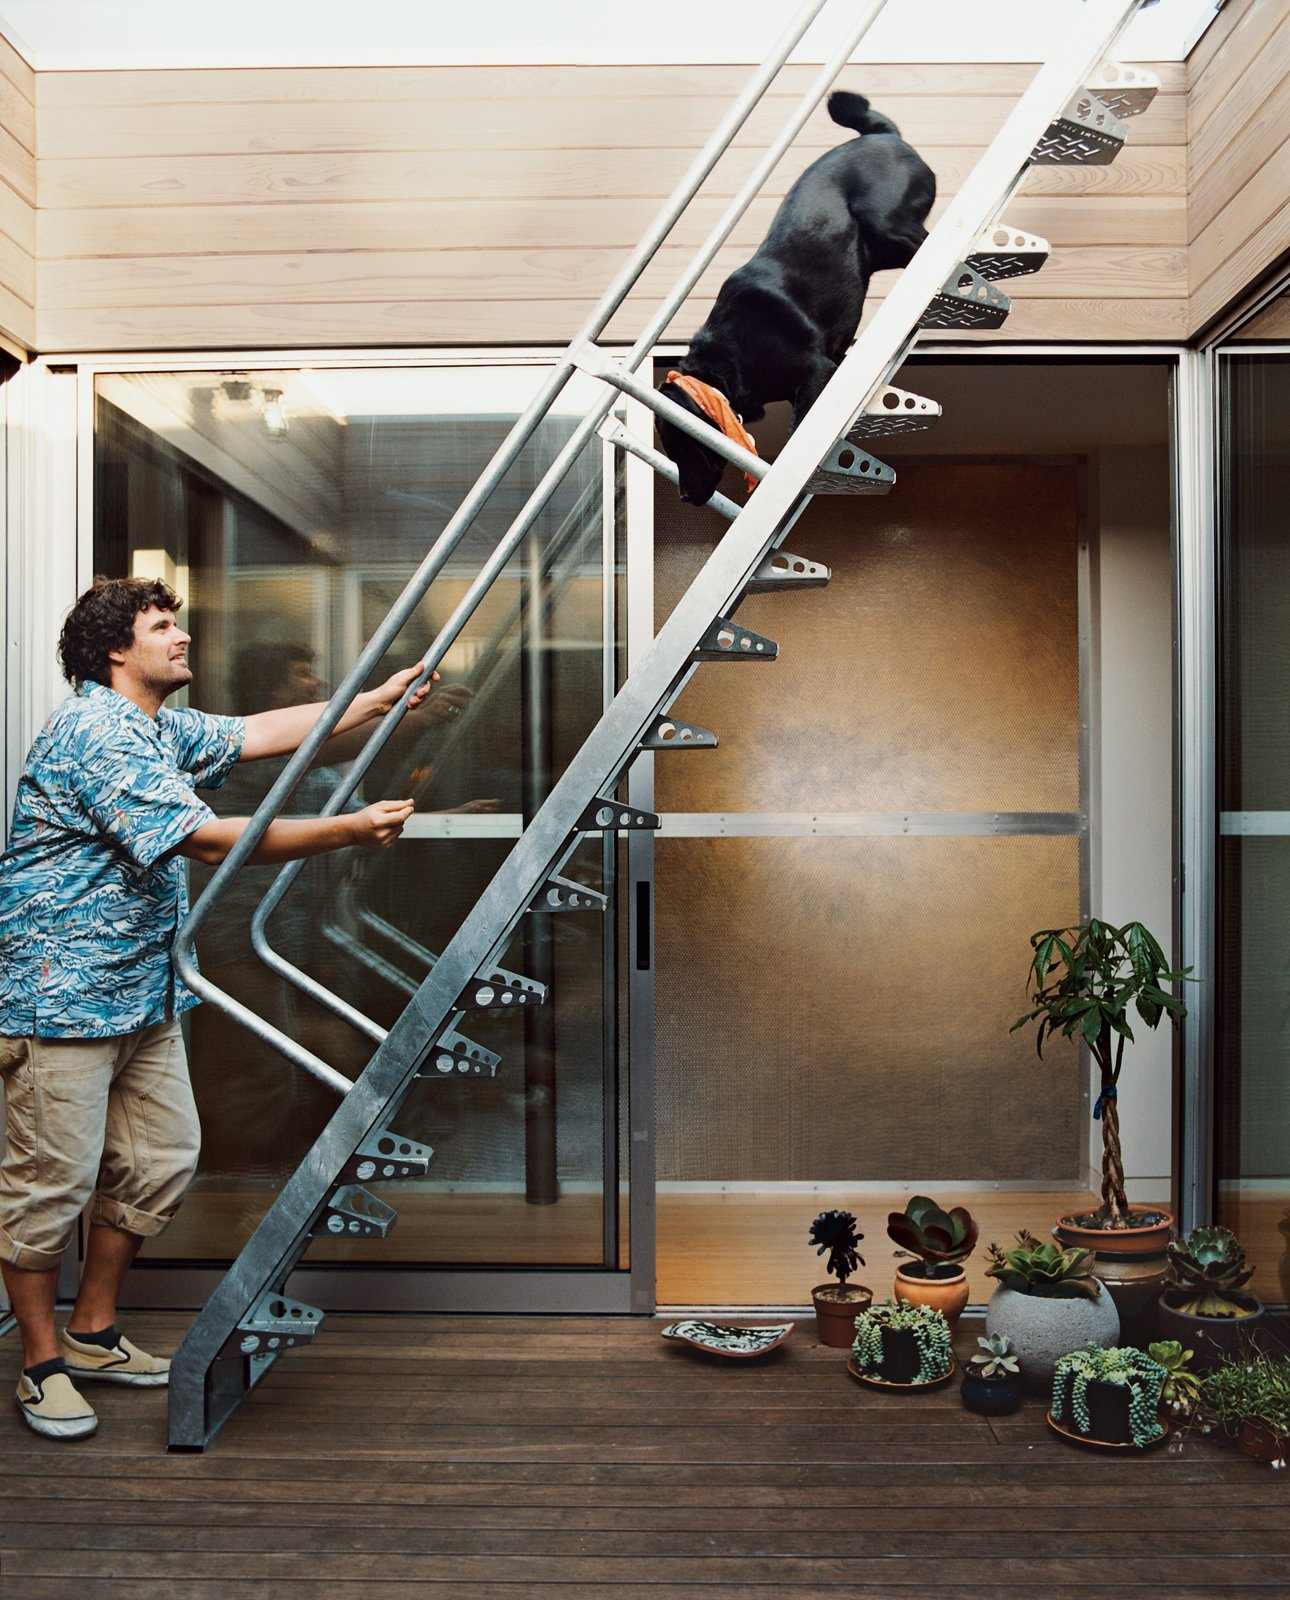 Tad Beck greets his lab mix, Little Bear, at the bottom of an alternating tread stairway that makes getting to and from the roof deck easy on two or four feet.  190+ Best Modern Staircase Ideas from Light Box